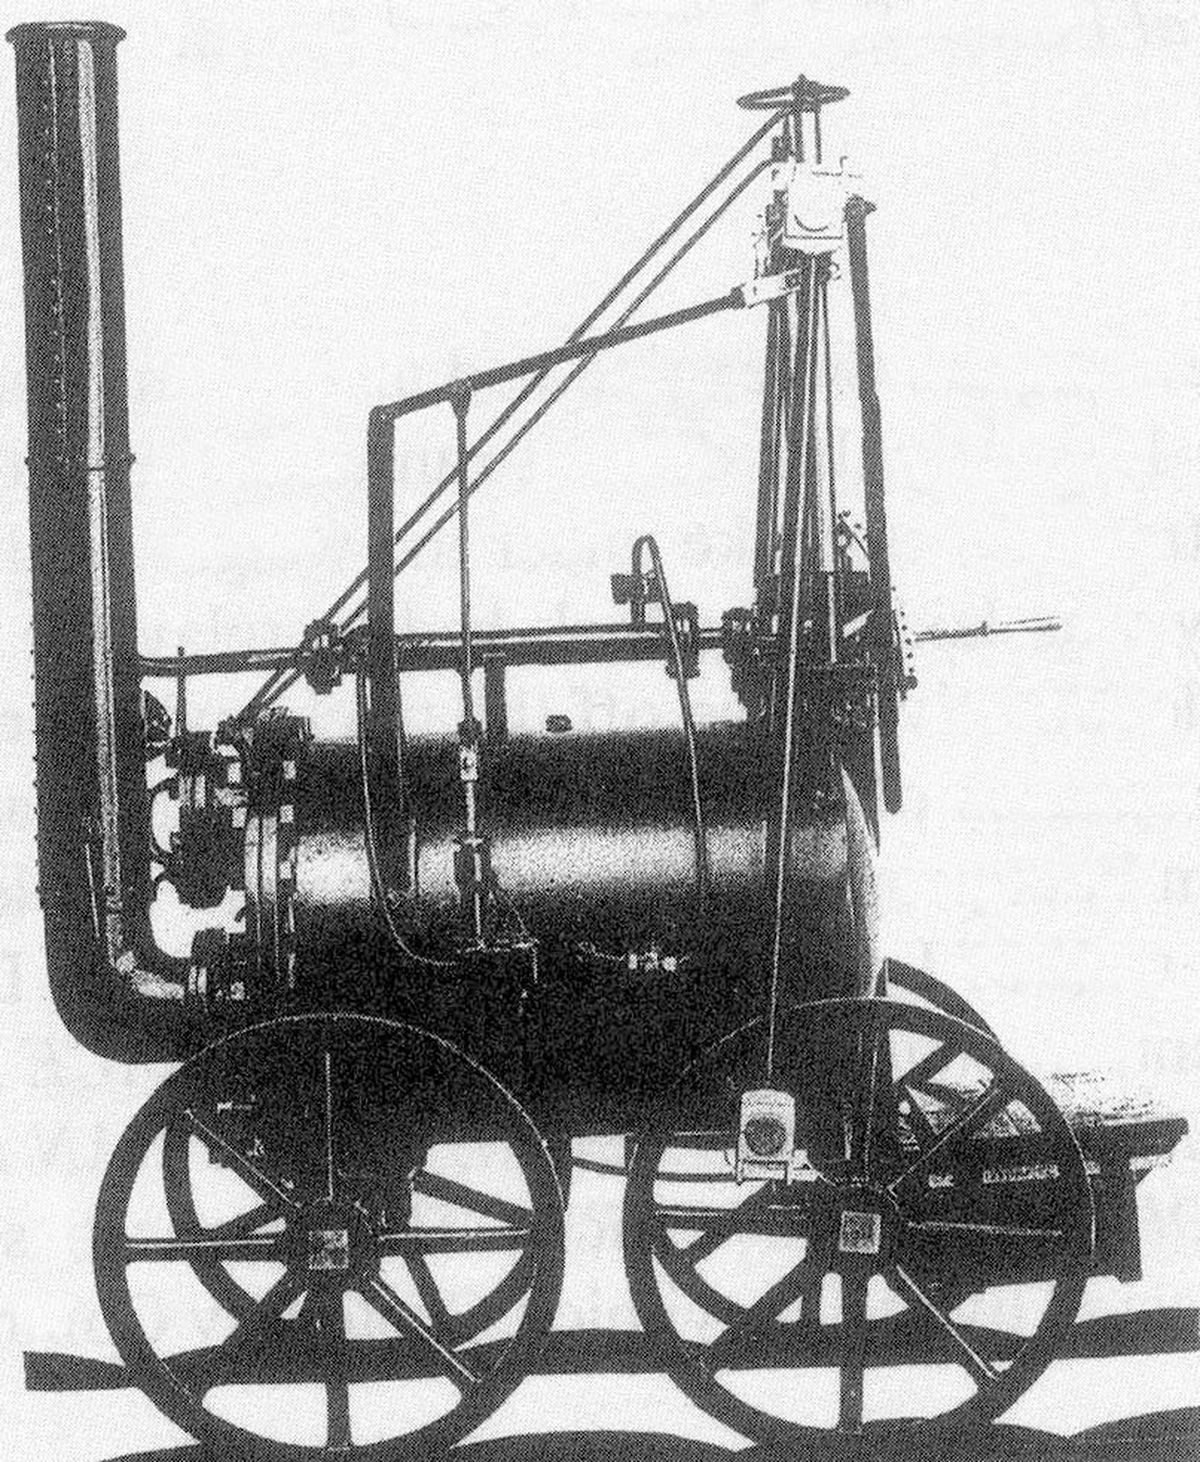 Catch Me Who Can, said to be the world's first passenger locomotive, built at Hazledine works, Bridgnorth, in 1808